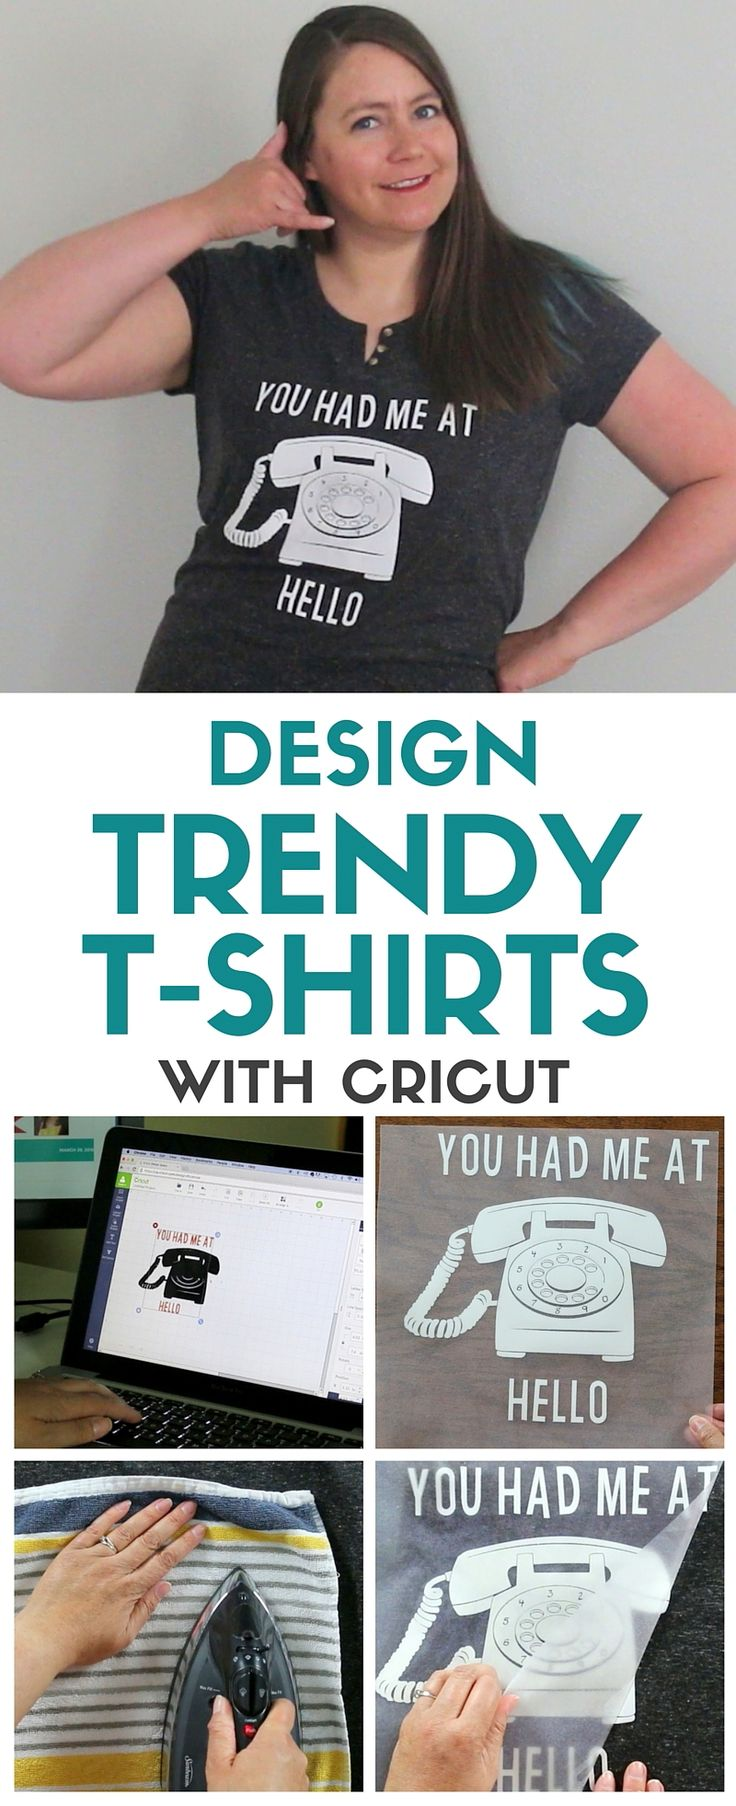 Unique Cricut Iron On Vinyl Ideas On Pinterest Iron On - How to make vinyl decals with a cricut